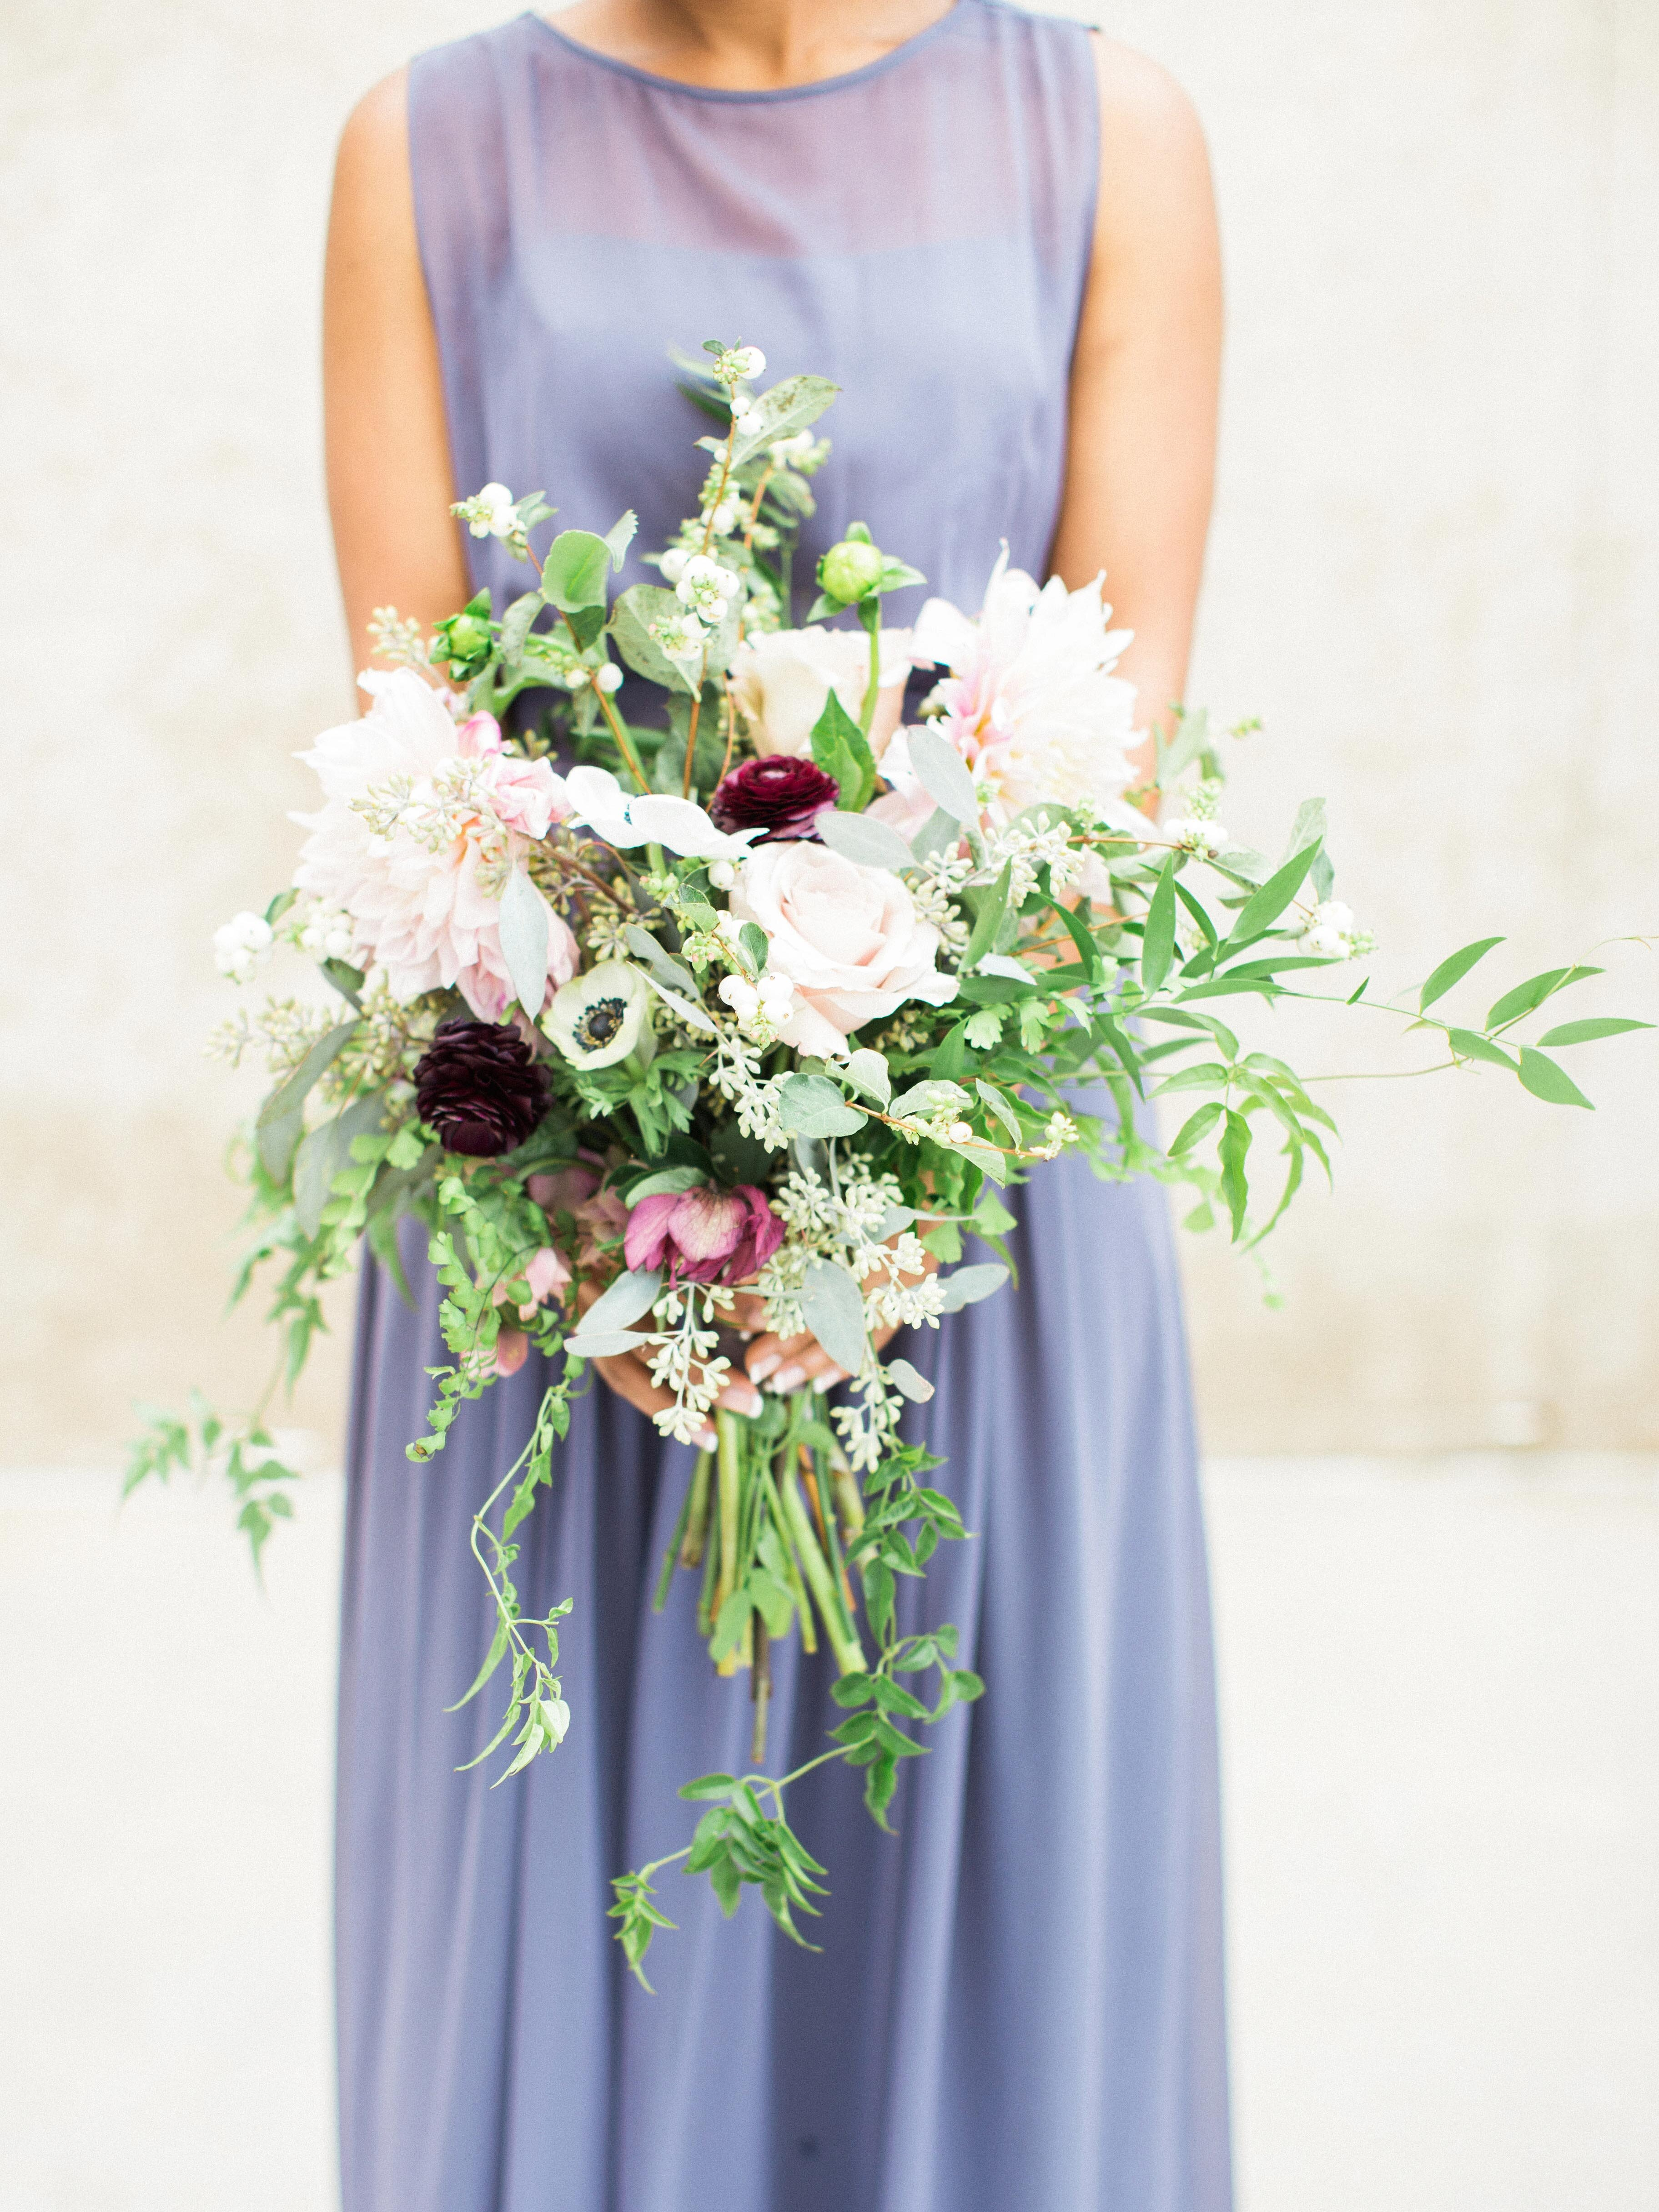 How To Make A Bridal Cascading Bouquet With Fake Flowers Ehow